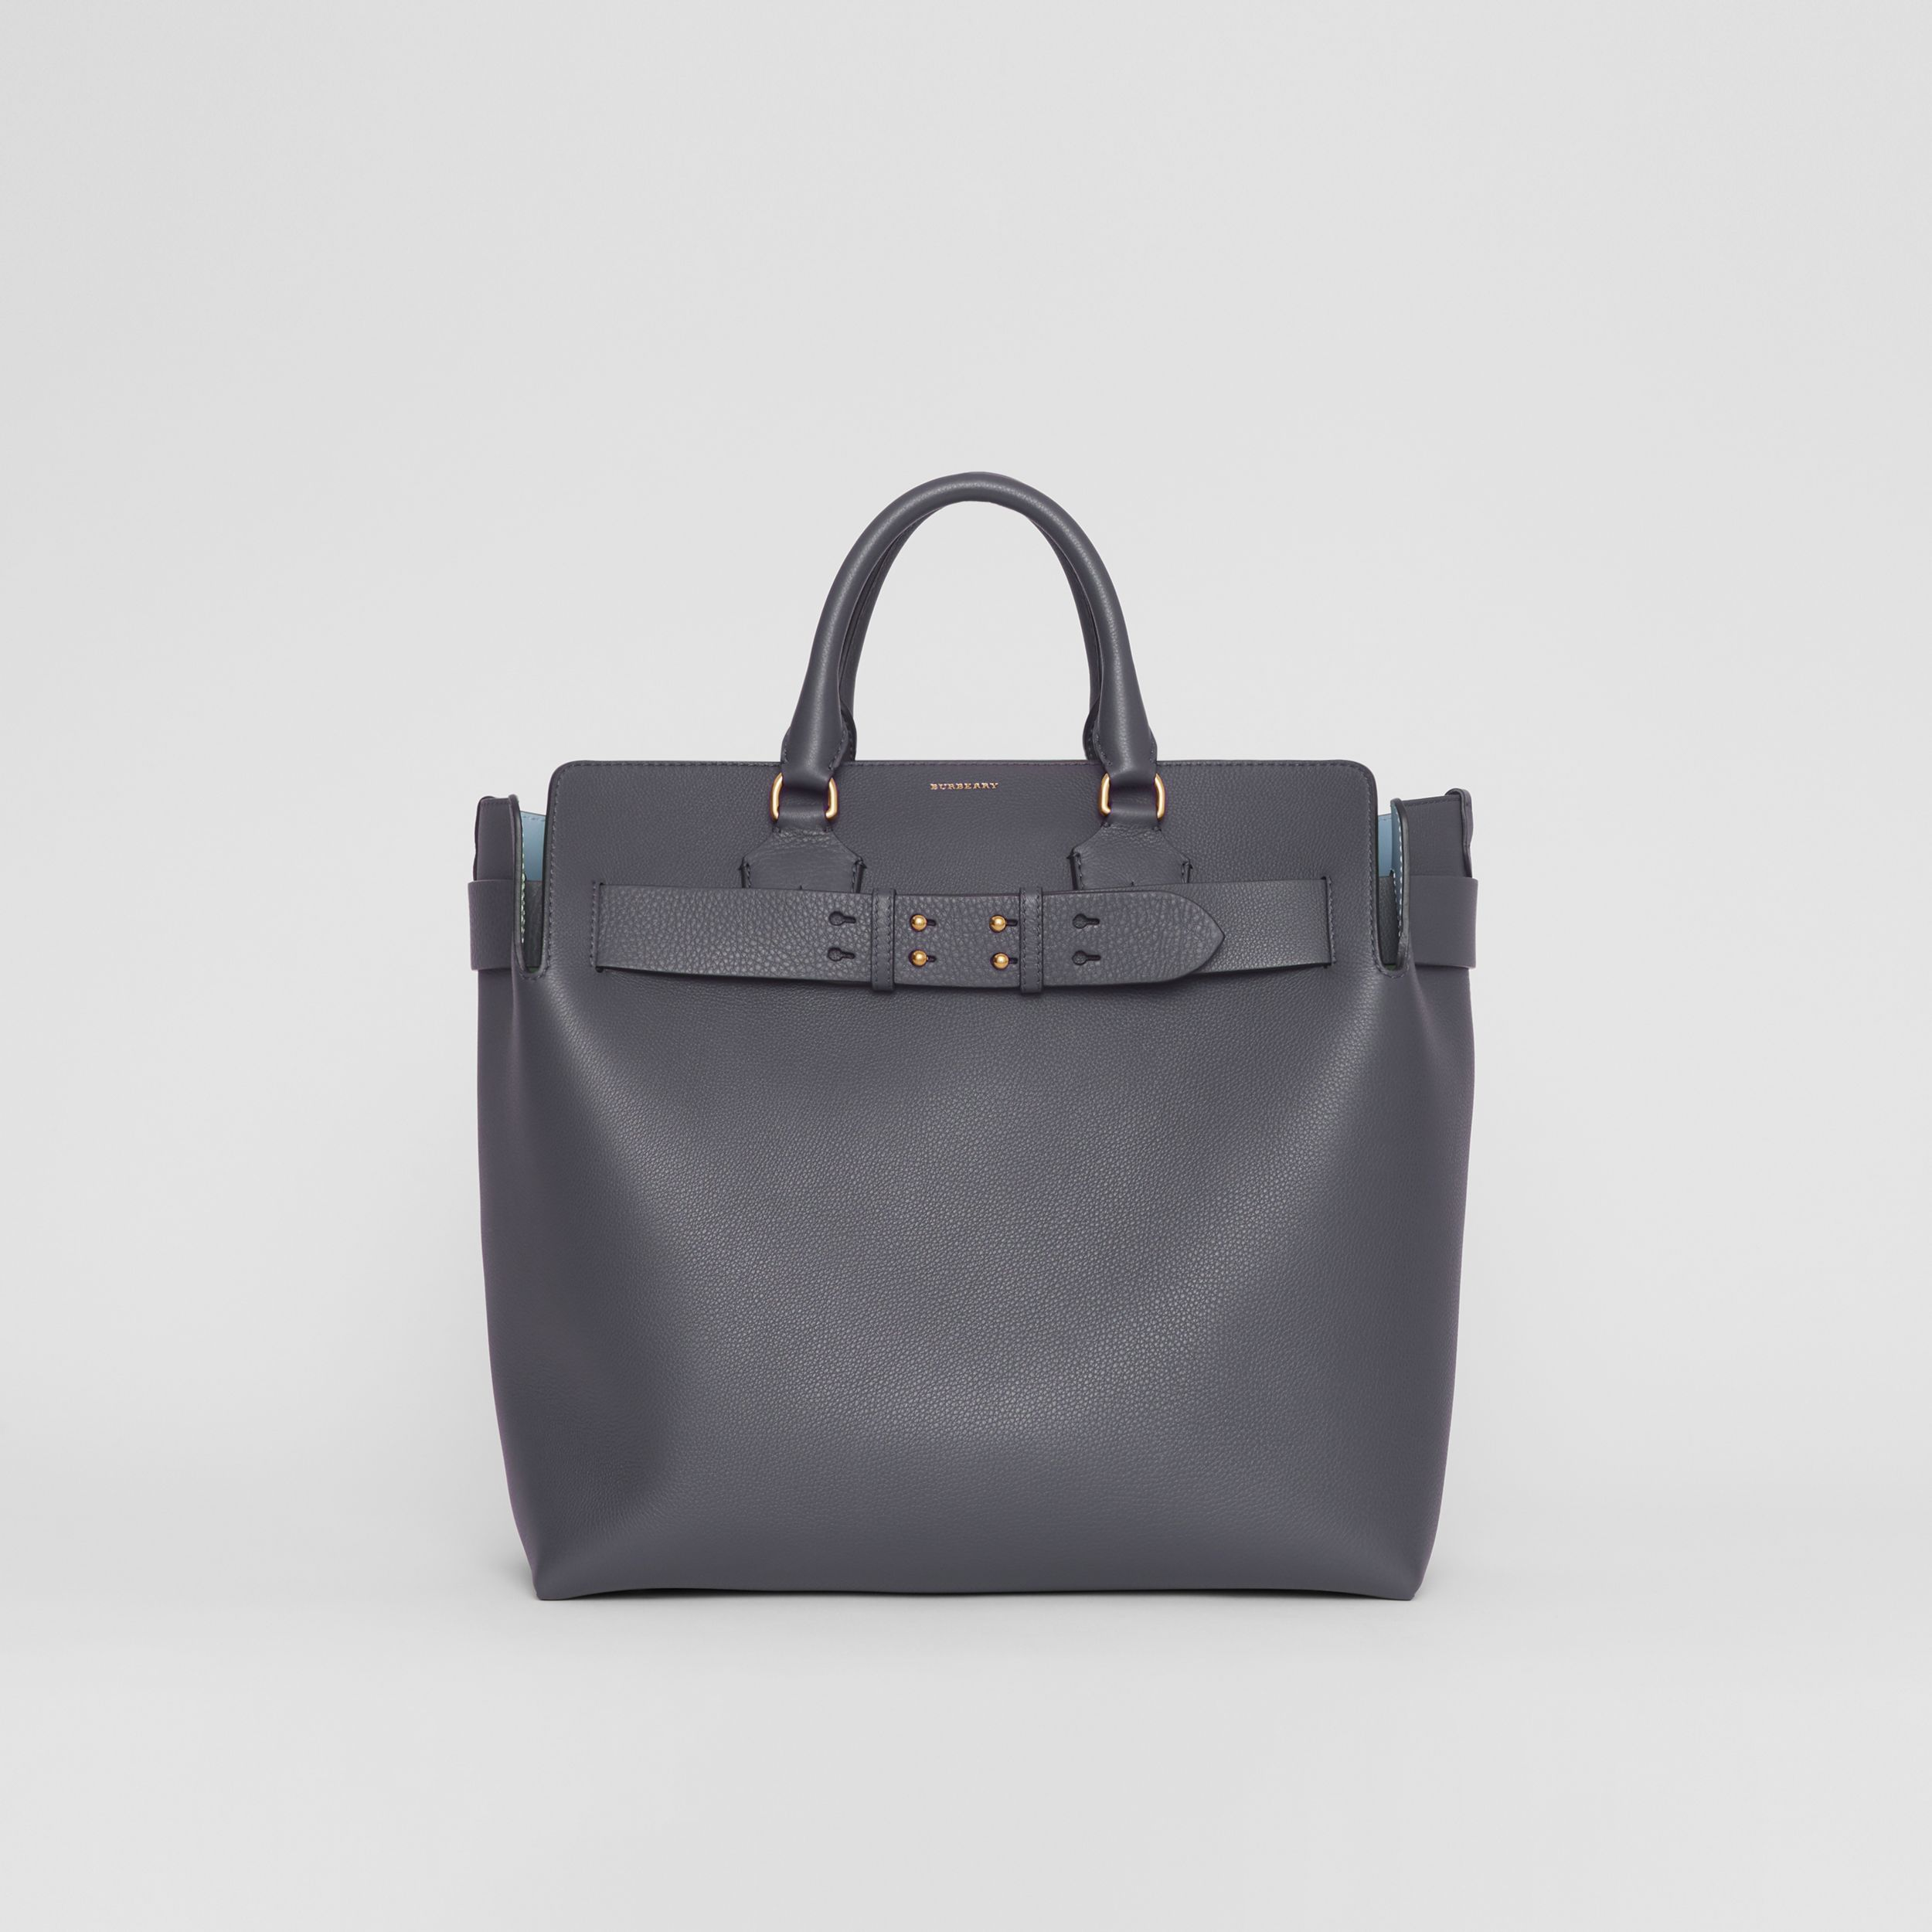 Borsa The Belt grande in pelle (Grigio Antracite) | Burberry - 1